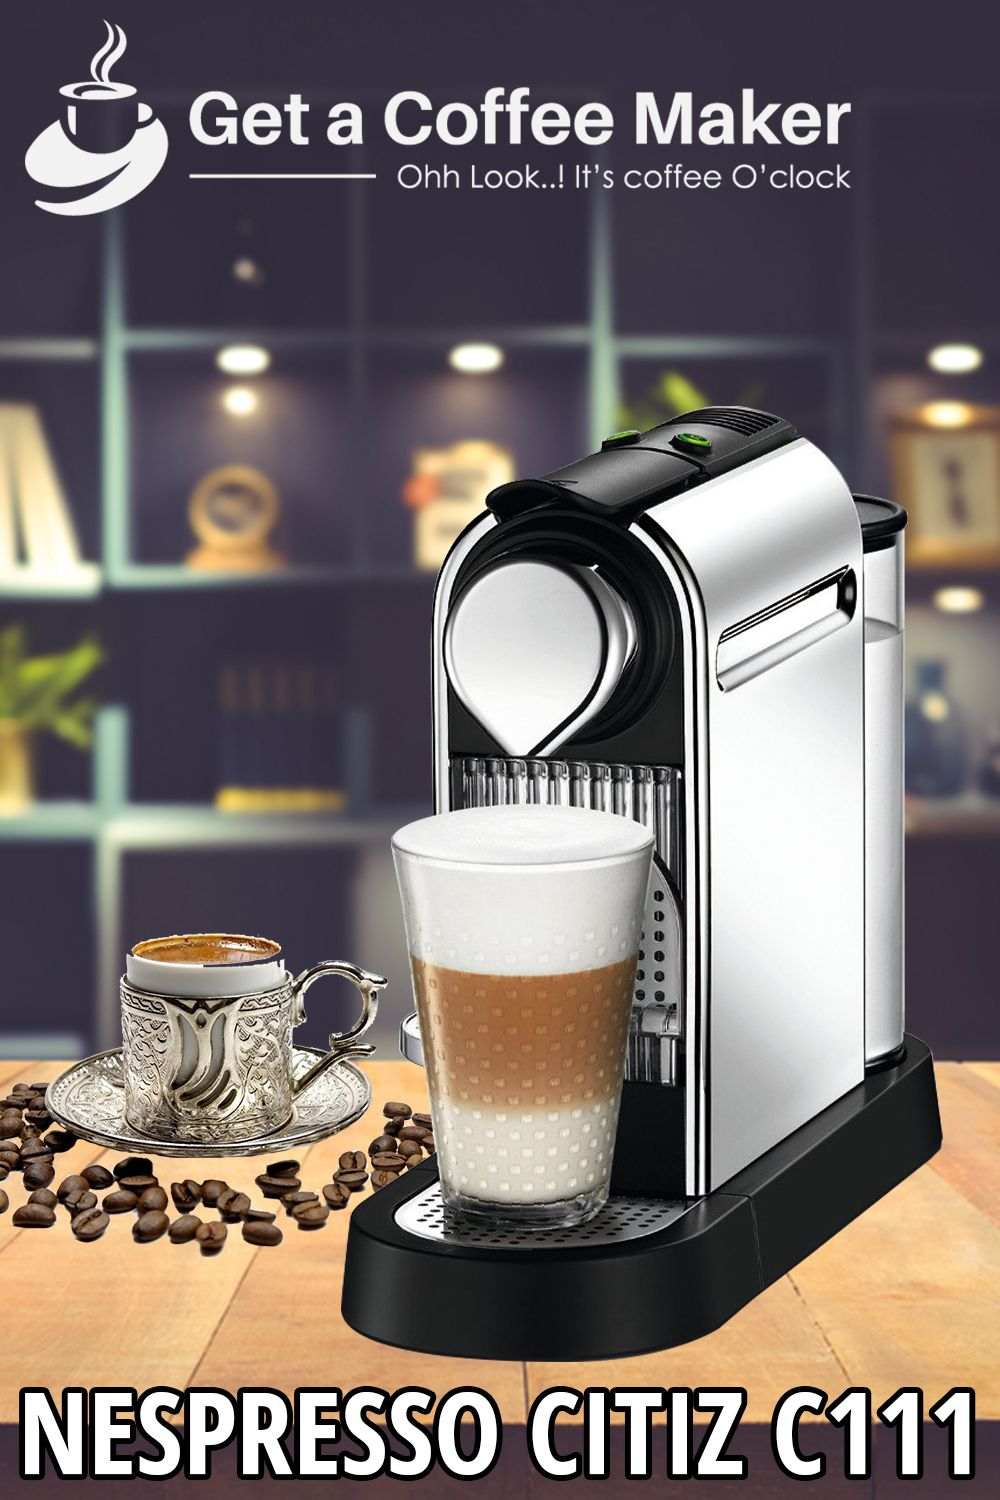 Nespresso Citiz C111 Espresso Maker (Oct. 2018 Cheap